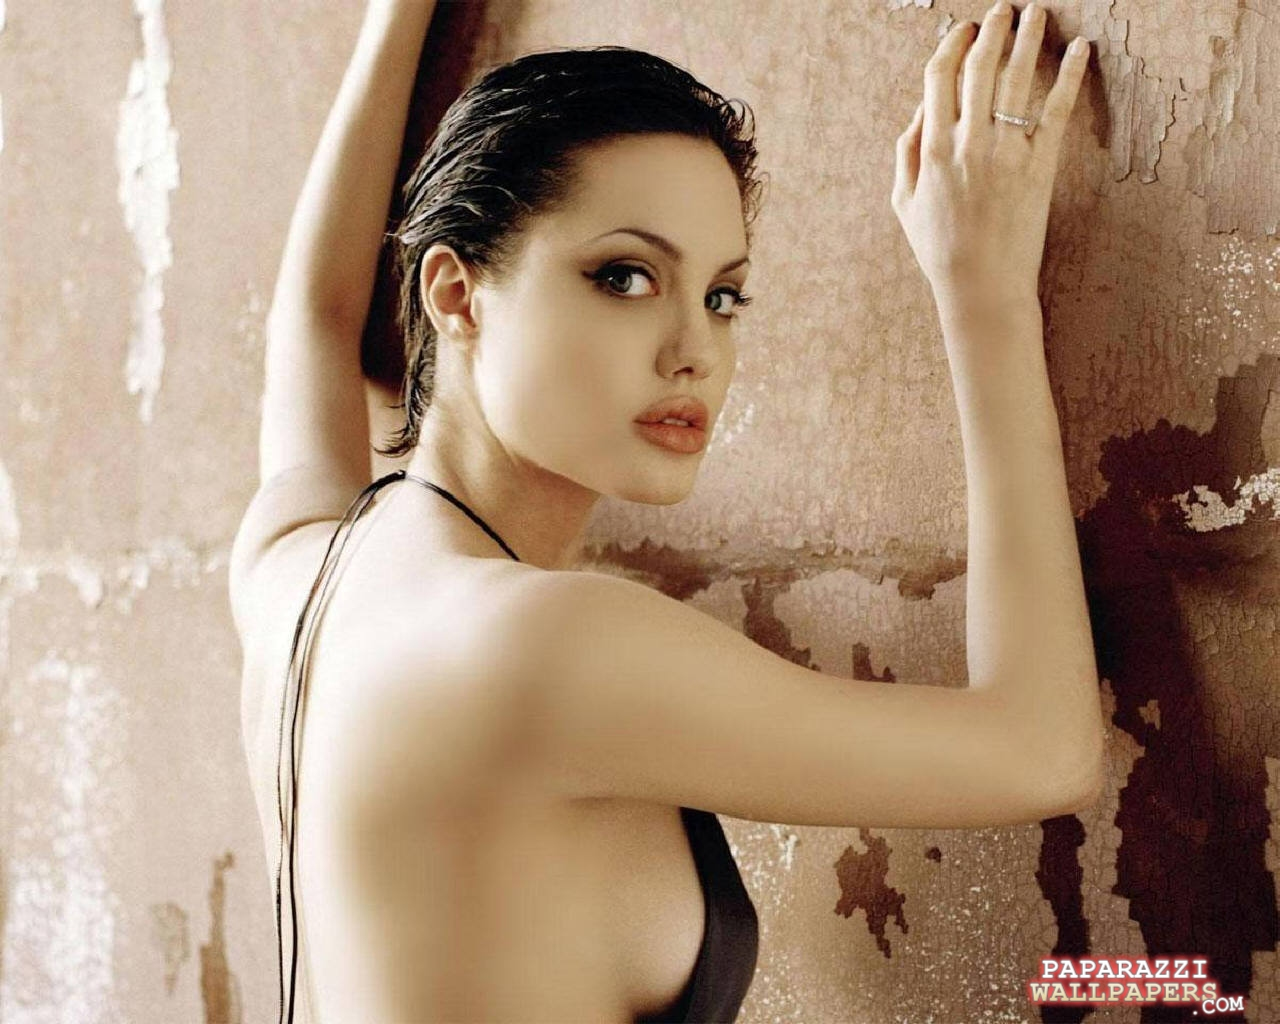 angelina jolie wallpapers 085